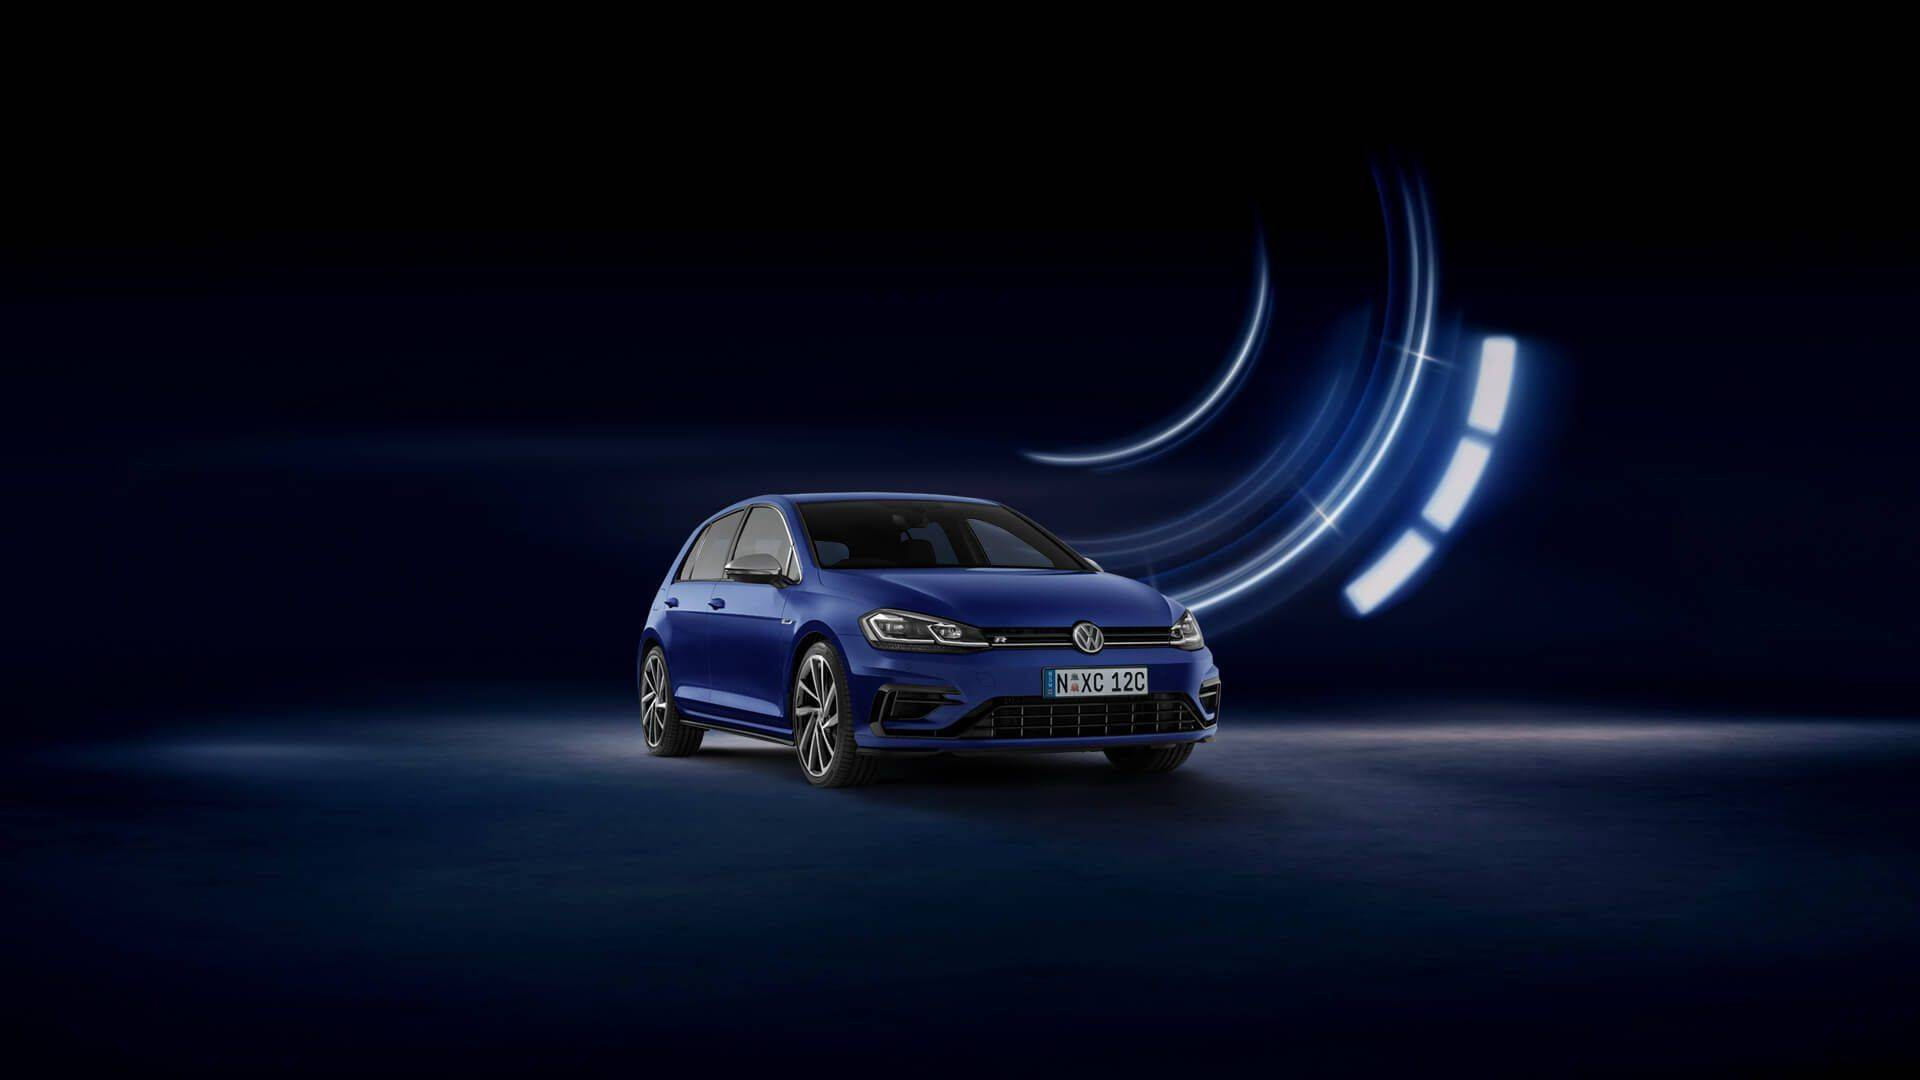 Golf R Hero Image